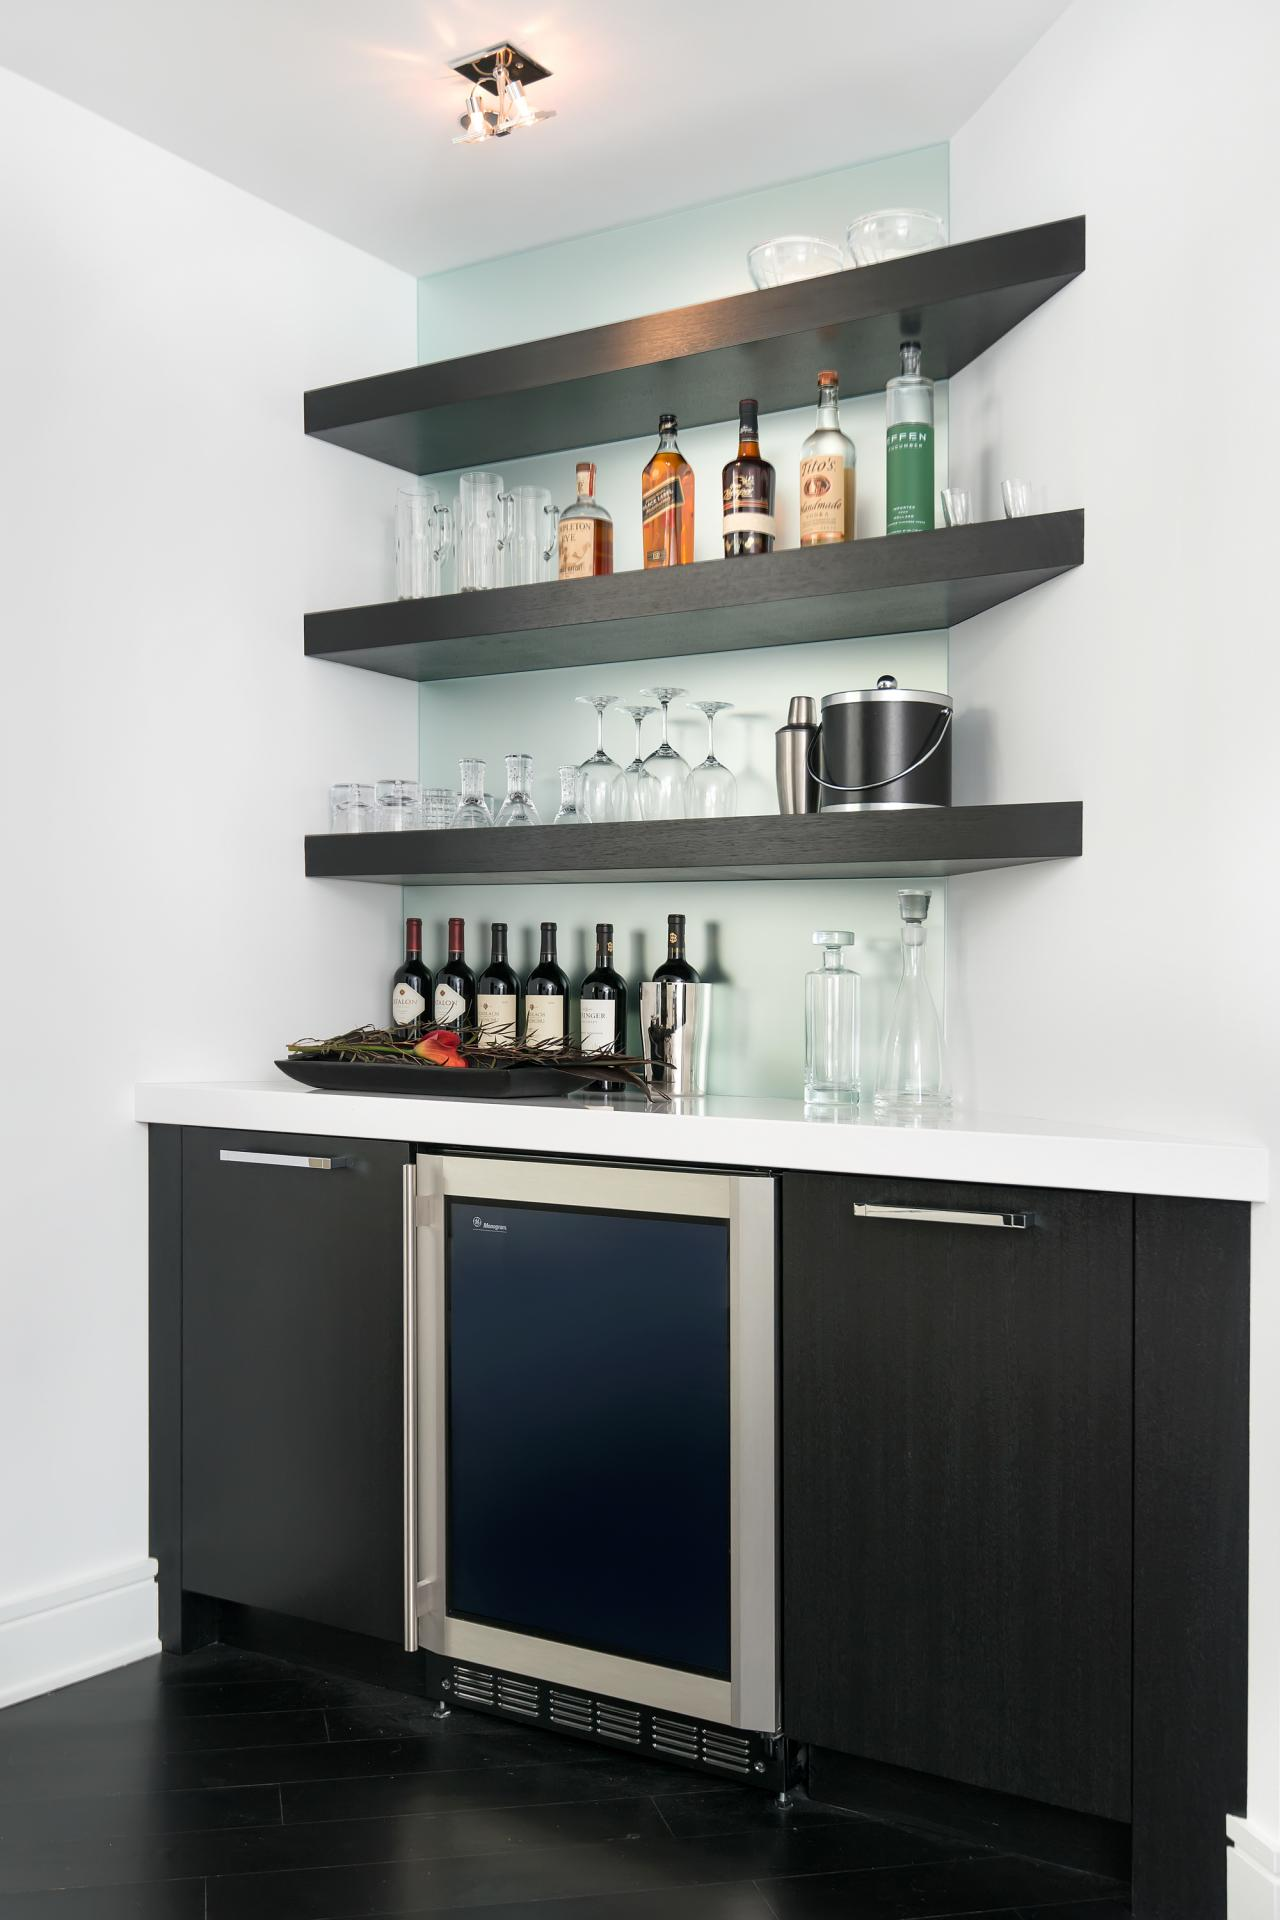 wet bar with floating shelves for homebase cube unit closet home diy dvd stand cable box shelf hanging without screws ikea storage metal stainless steel wall mounted fold away